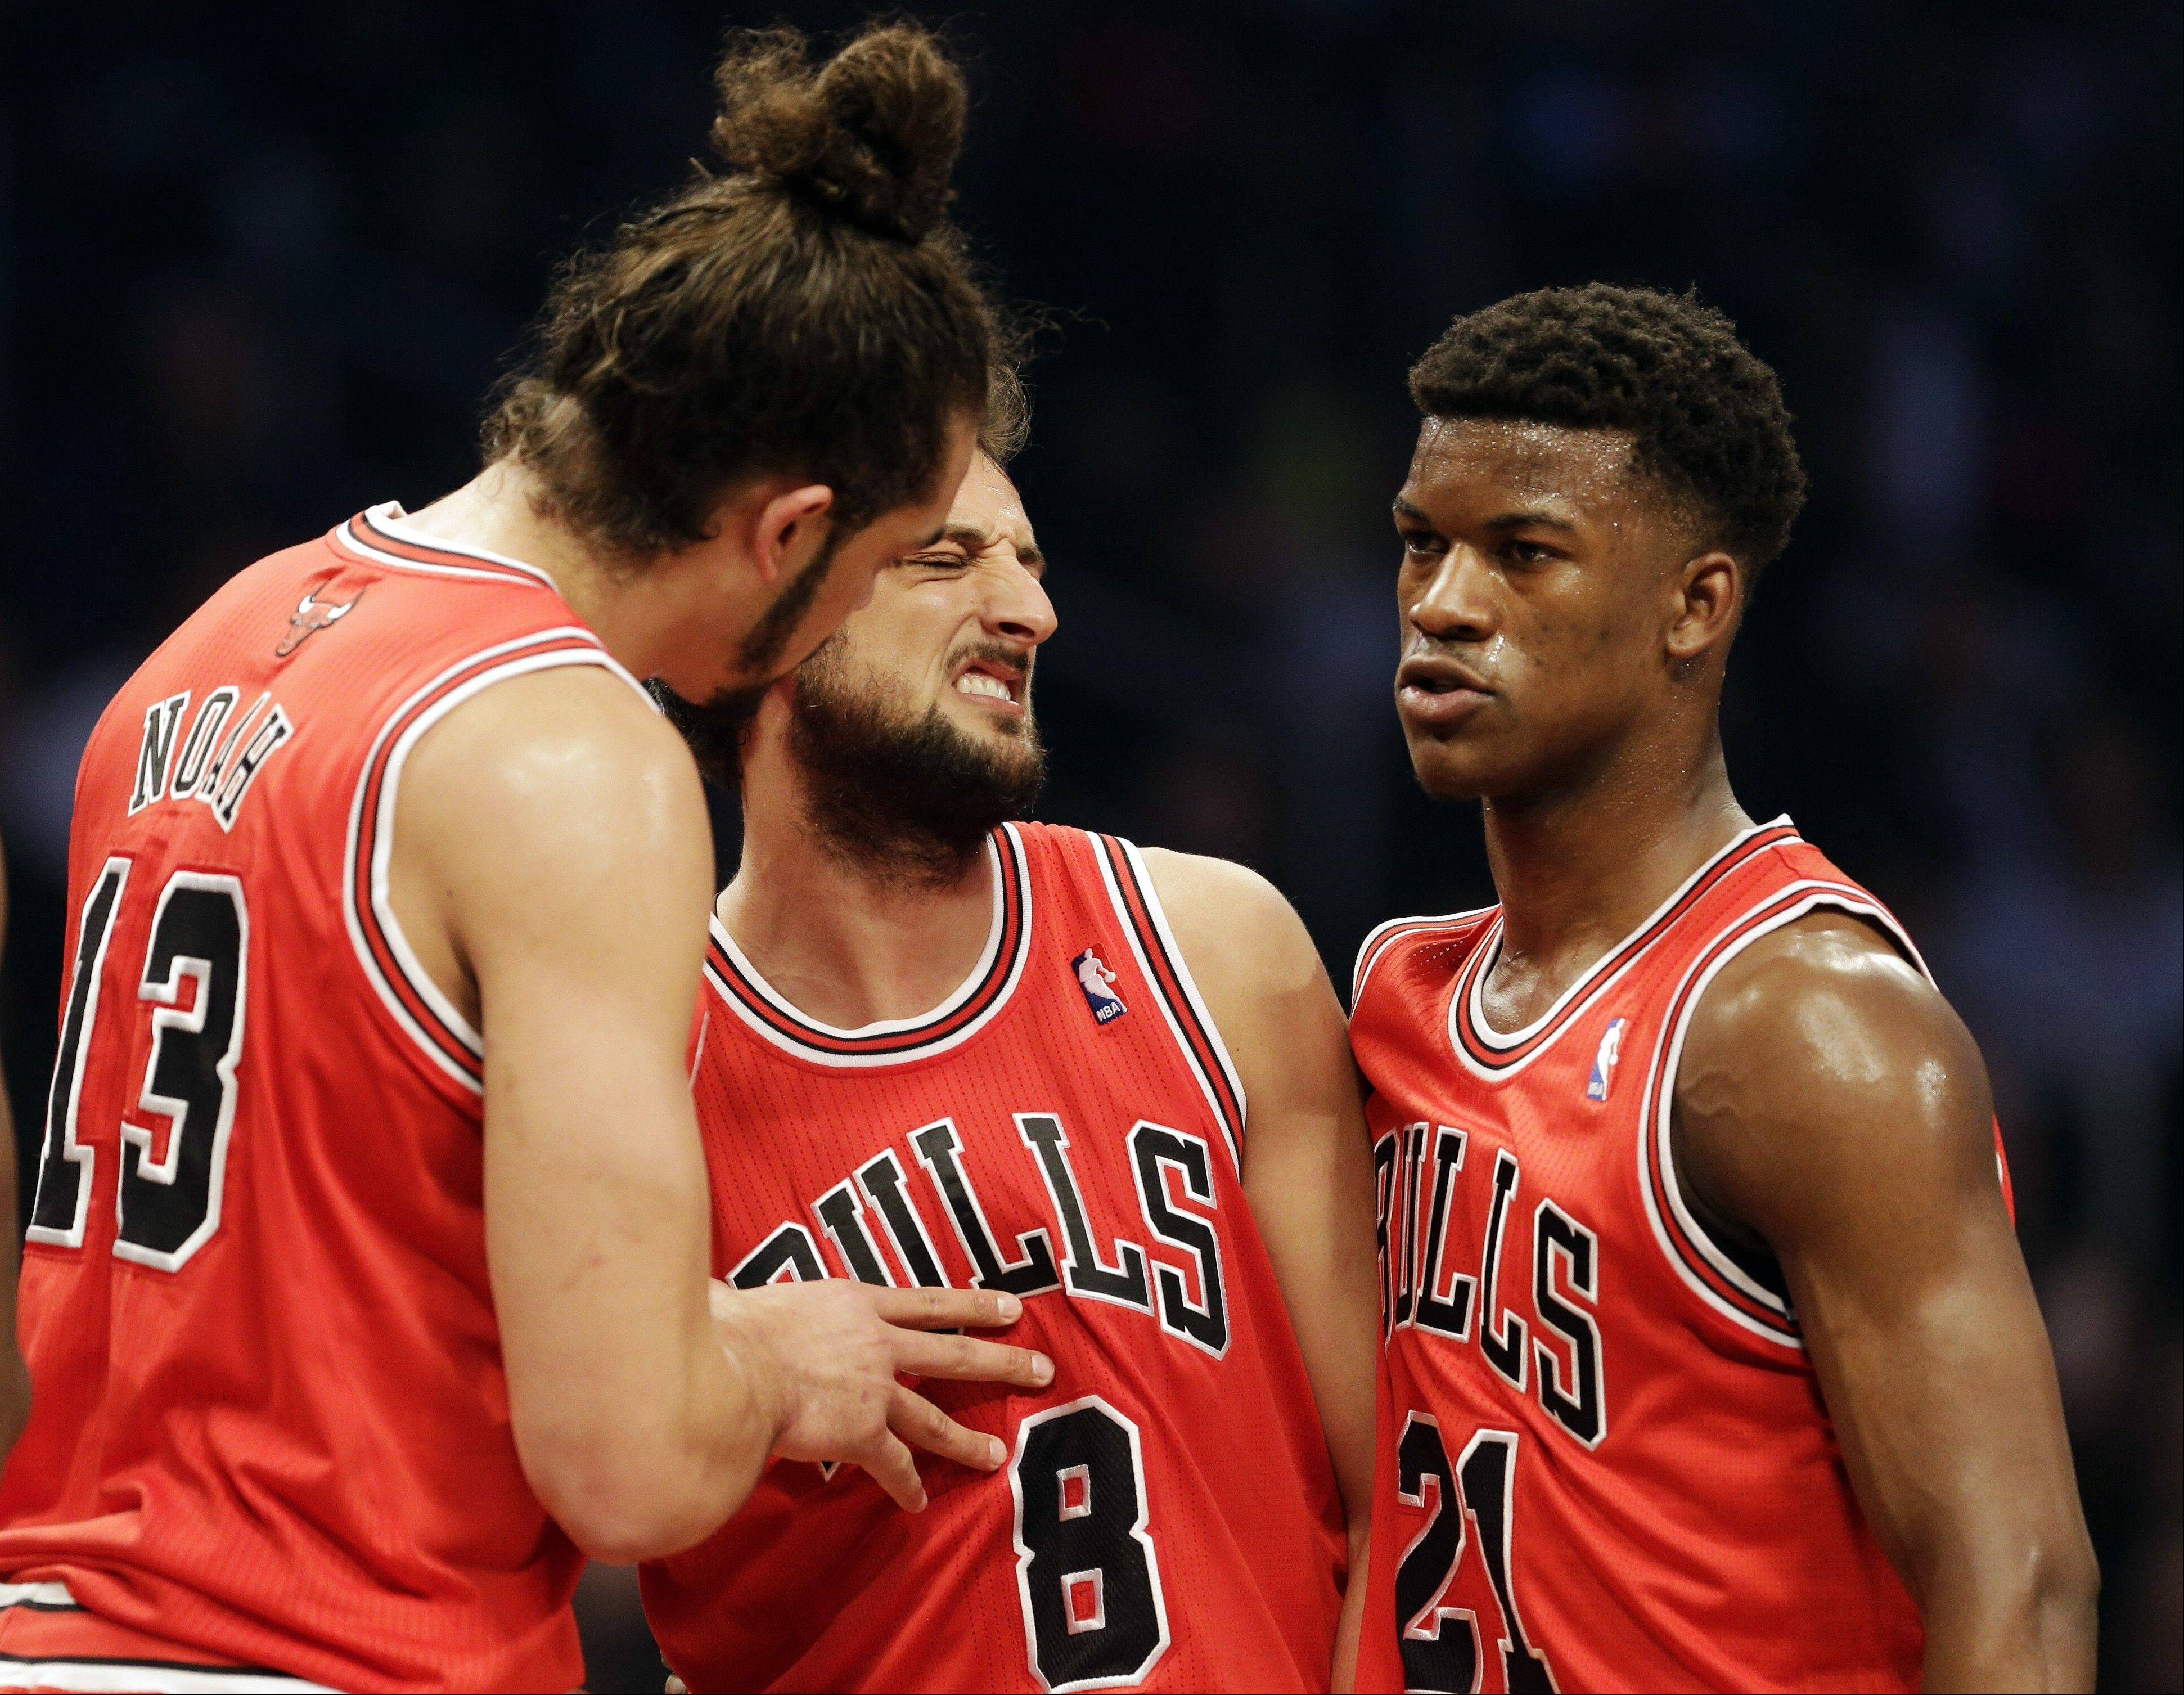 Marco Belinelli, center, reacts as teammates Joakim Noah, left, and Jimmy Butler talk to him during the first half in Game 7 of their first-round NBA basketball playoff series against the Brooklyn Nets in New York, Saturday, May 4, 2013.